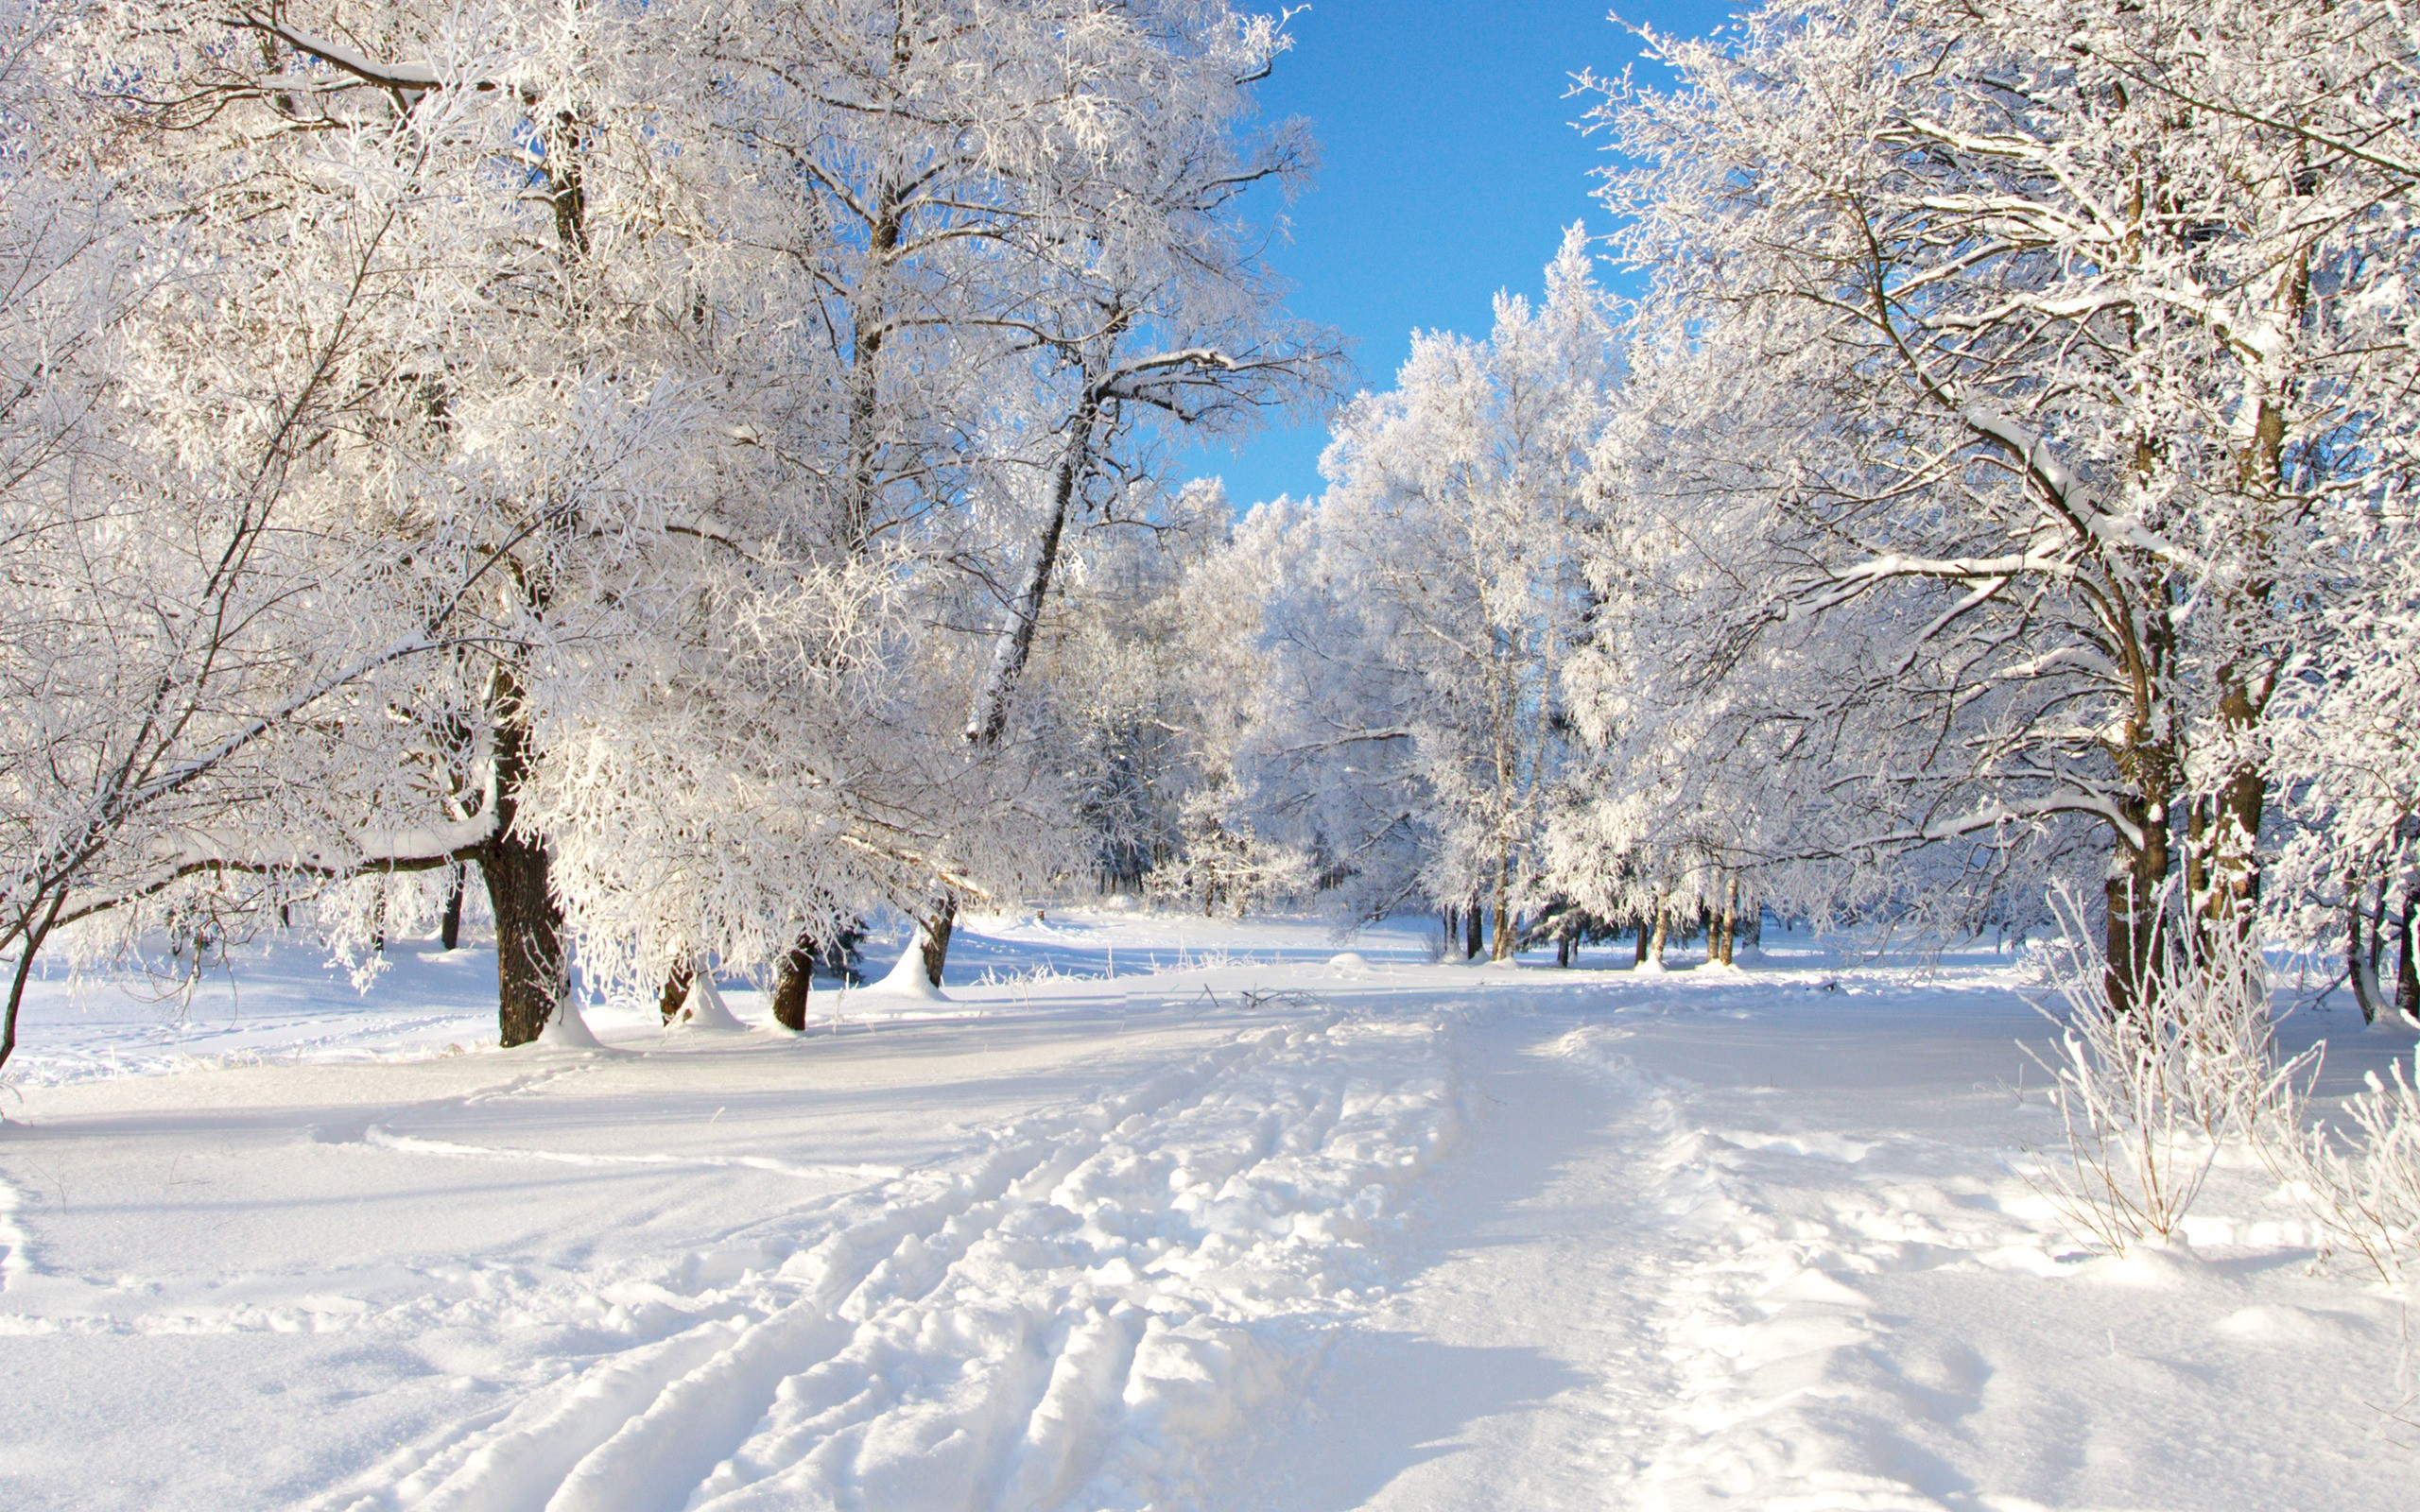 snow wallpaper widescreen